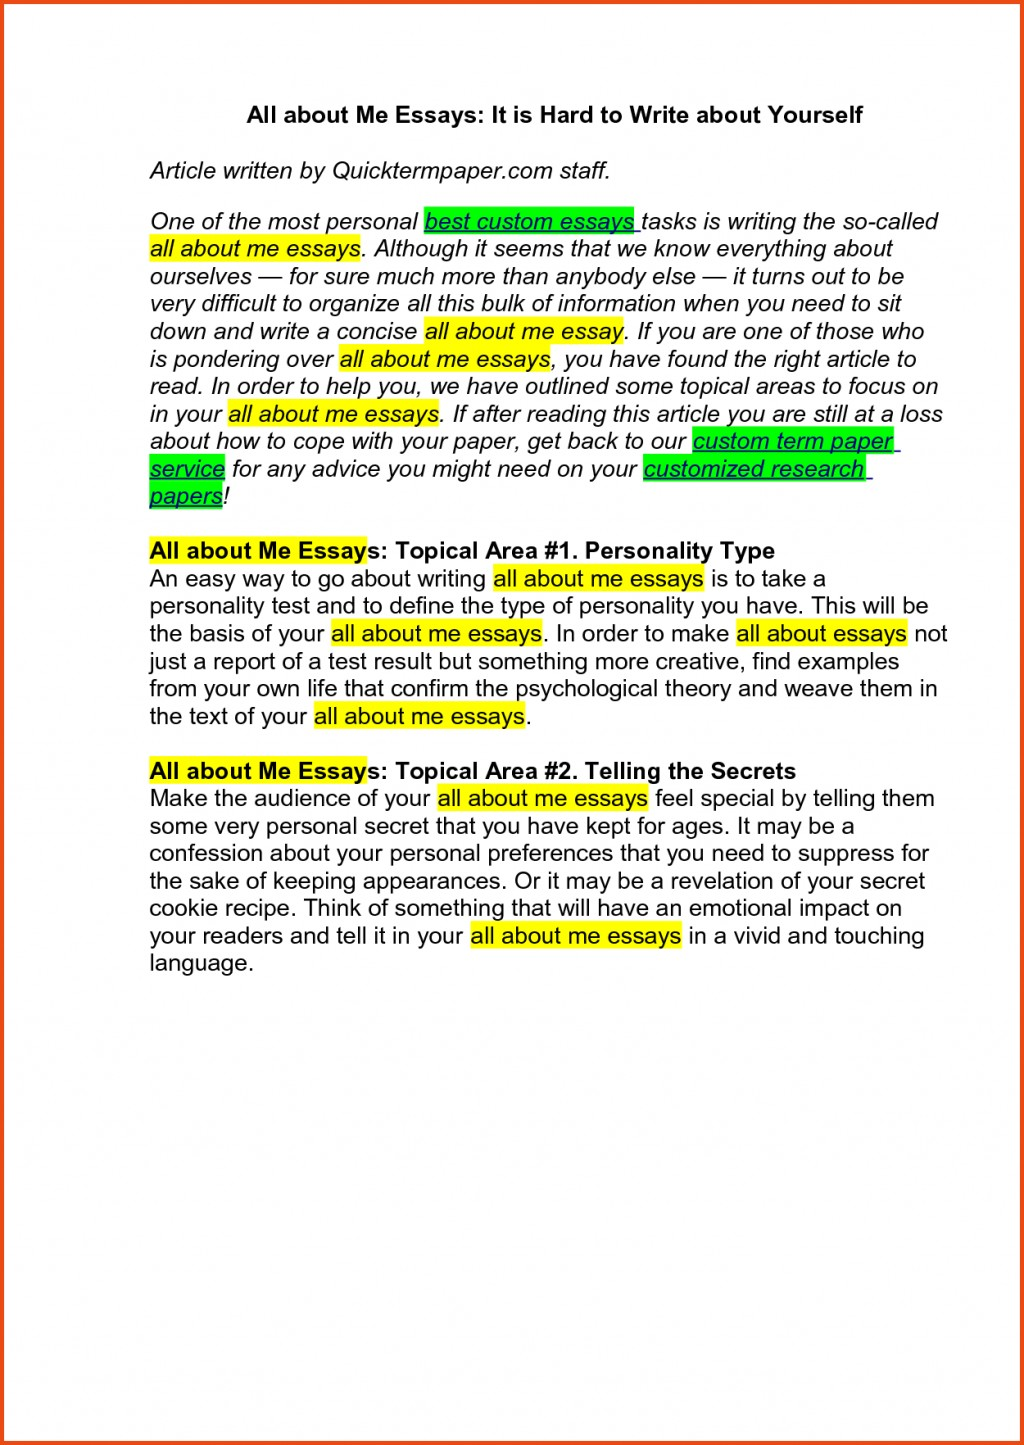 009 Essay Example Sample College Admissions Good Mba Essays School Application About Yourself For Examples Confortable Resume In Admis How To Write Unusual An Myself Pdf Describing Large